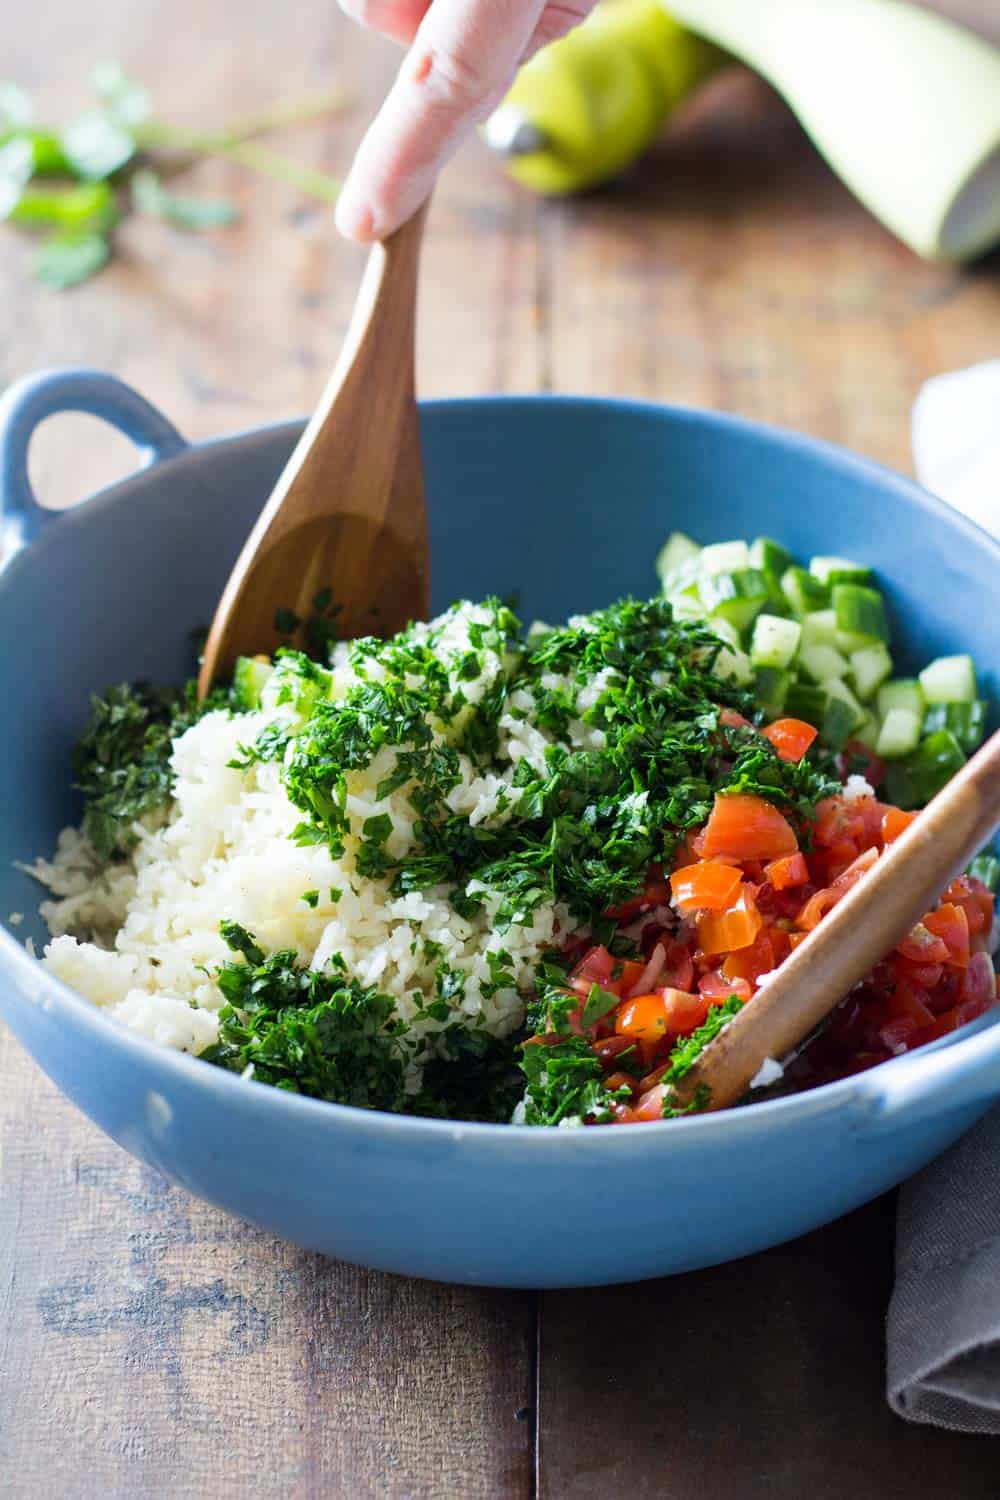 Cauliflower couscous tabbouleh salad being stirred with wooden spoons in a blue bowl.